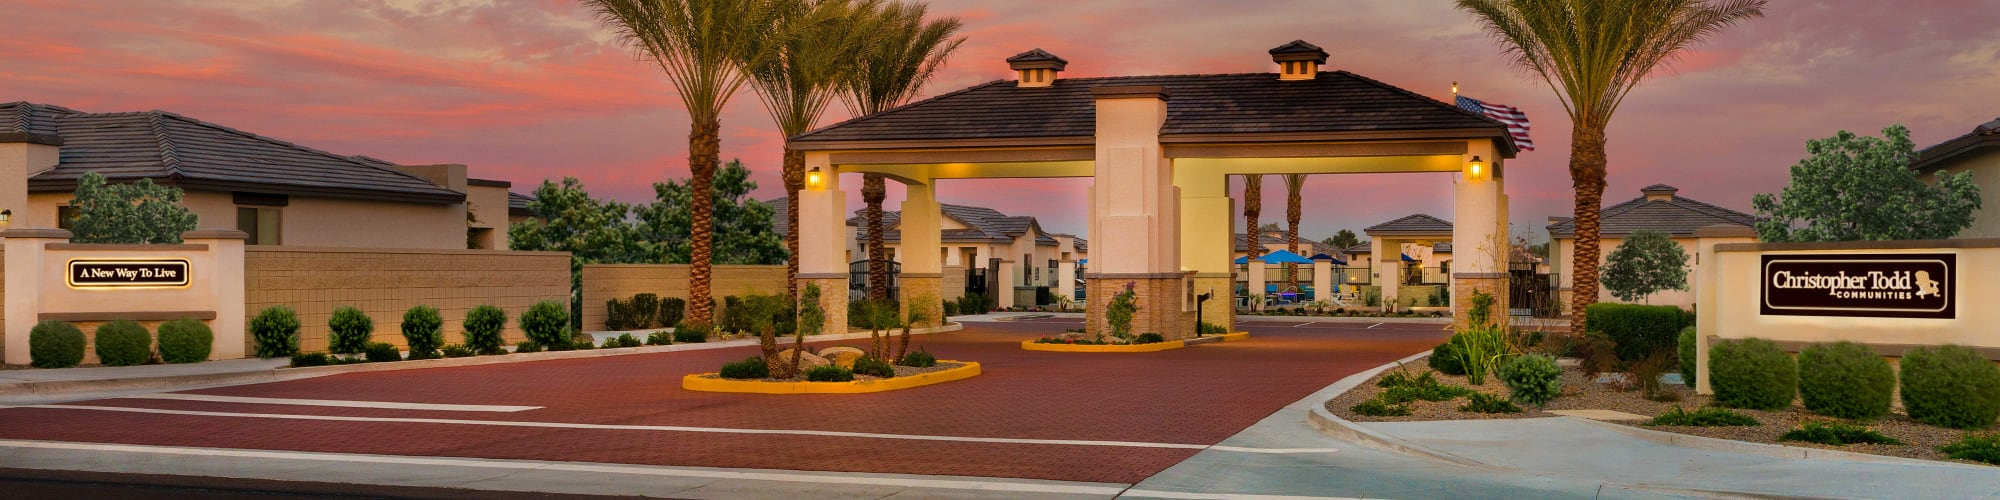 Photos of Christopher Todd Communities on Mountain View in Surprise, Arizona